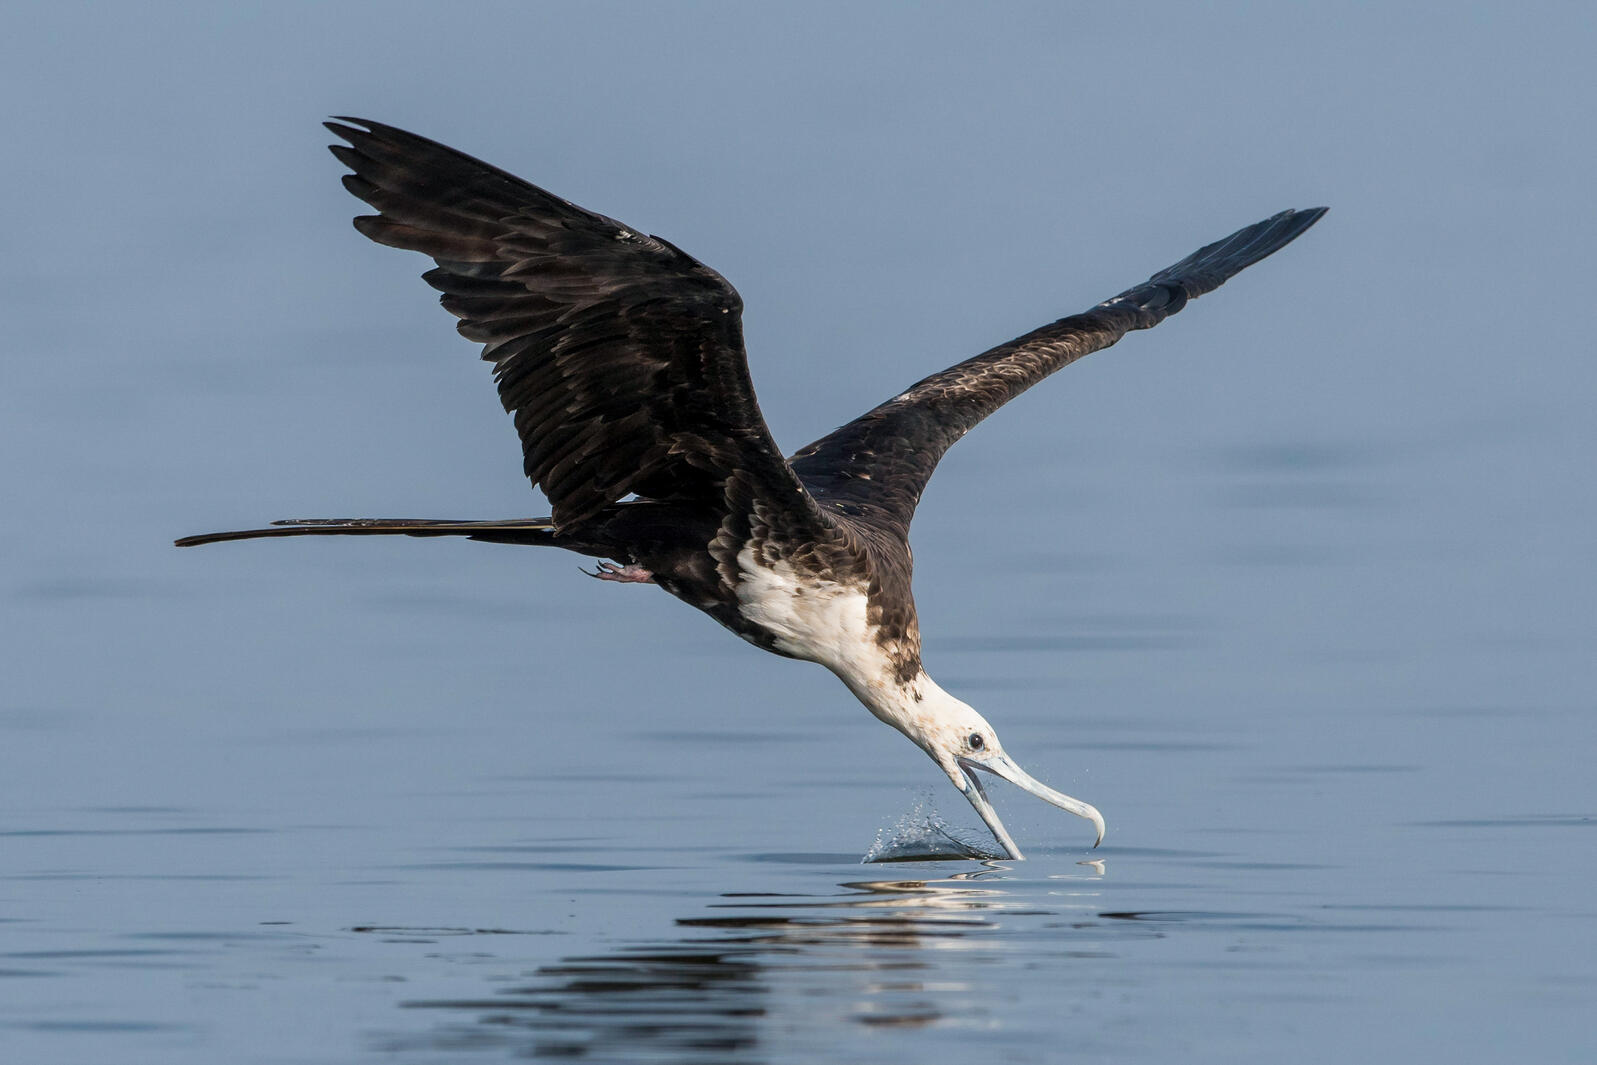 A Magnificent Frigatebird flying low over the sea with it's beak open, skimming the water. It may be diving for a fish.